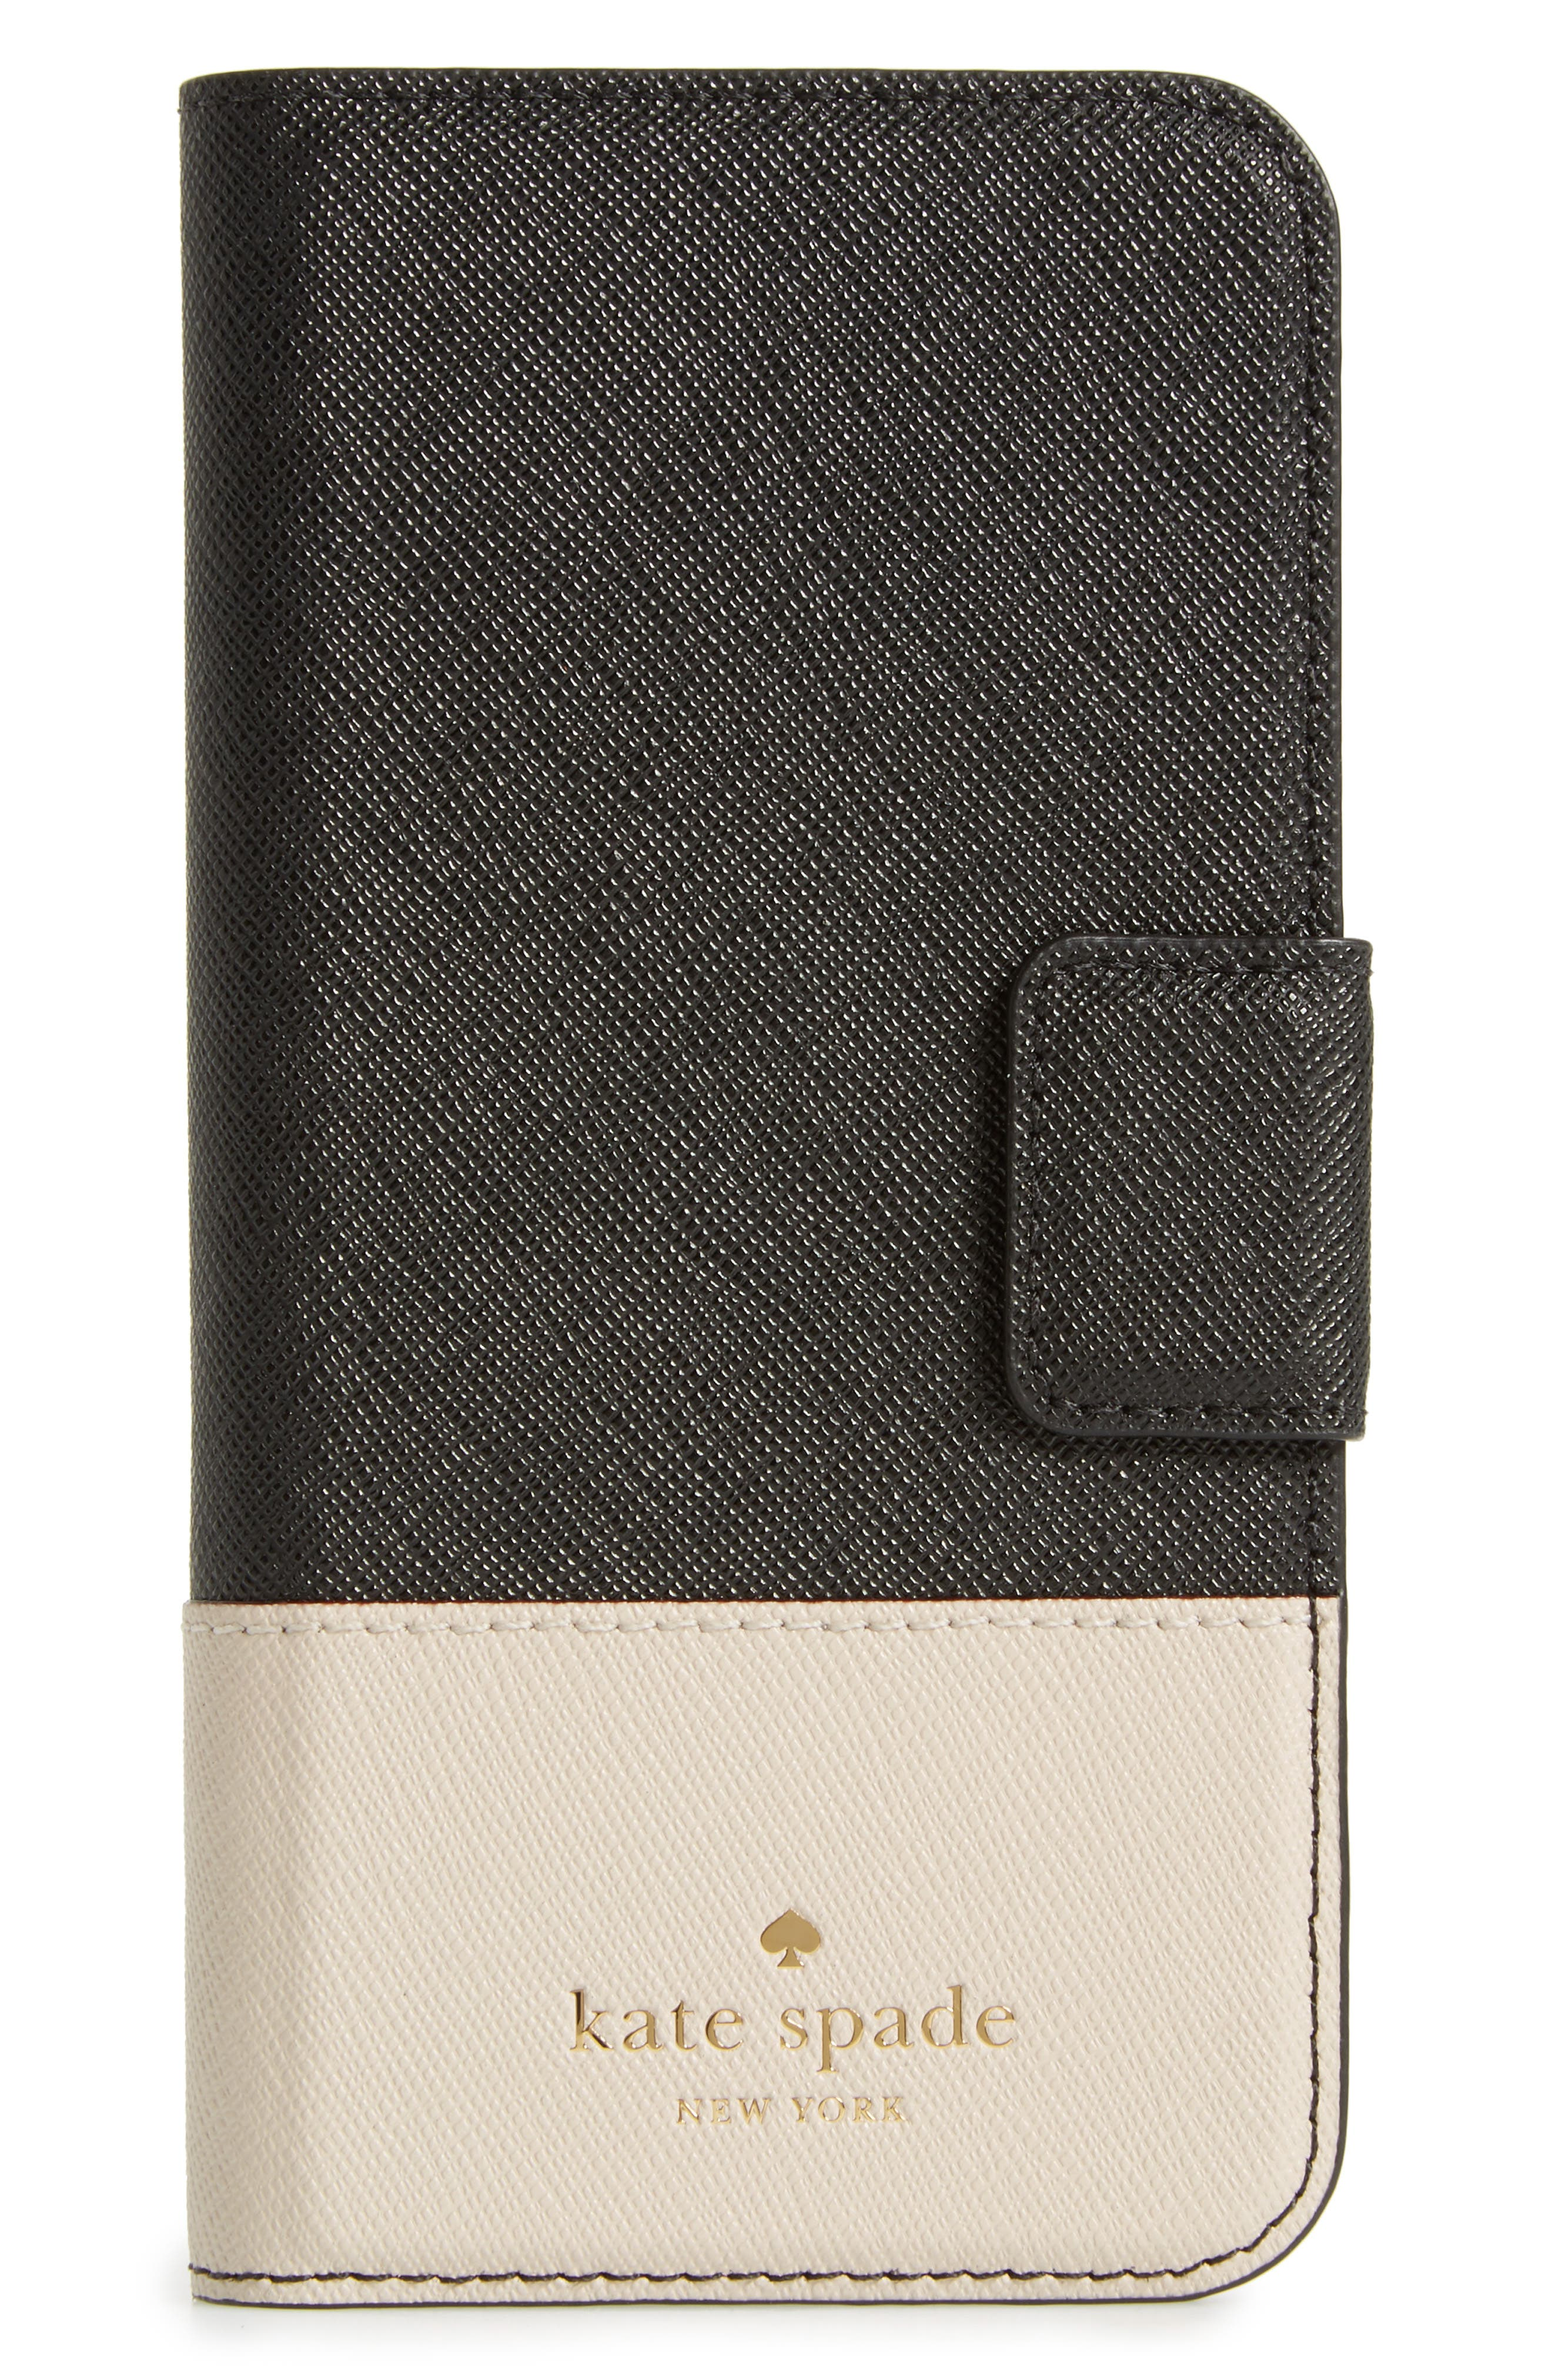 KATE SPADE NEW YORK leather iPhone 7 & 7 Plus folio